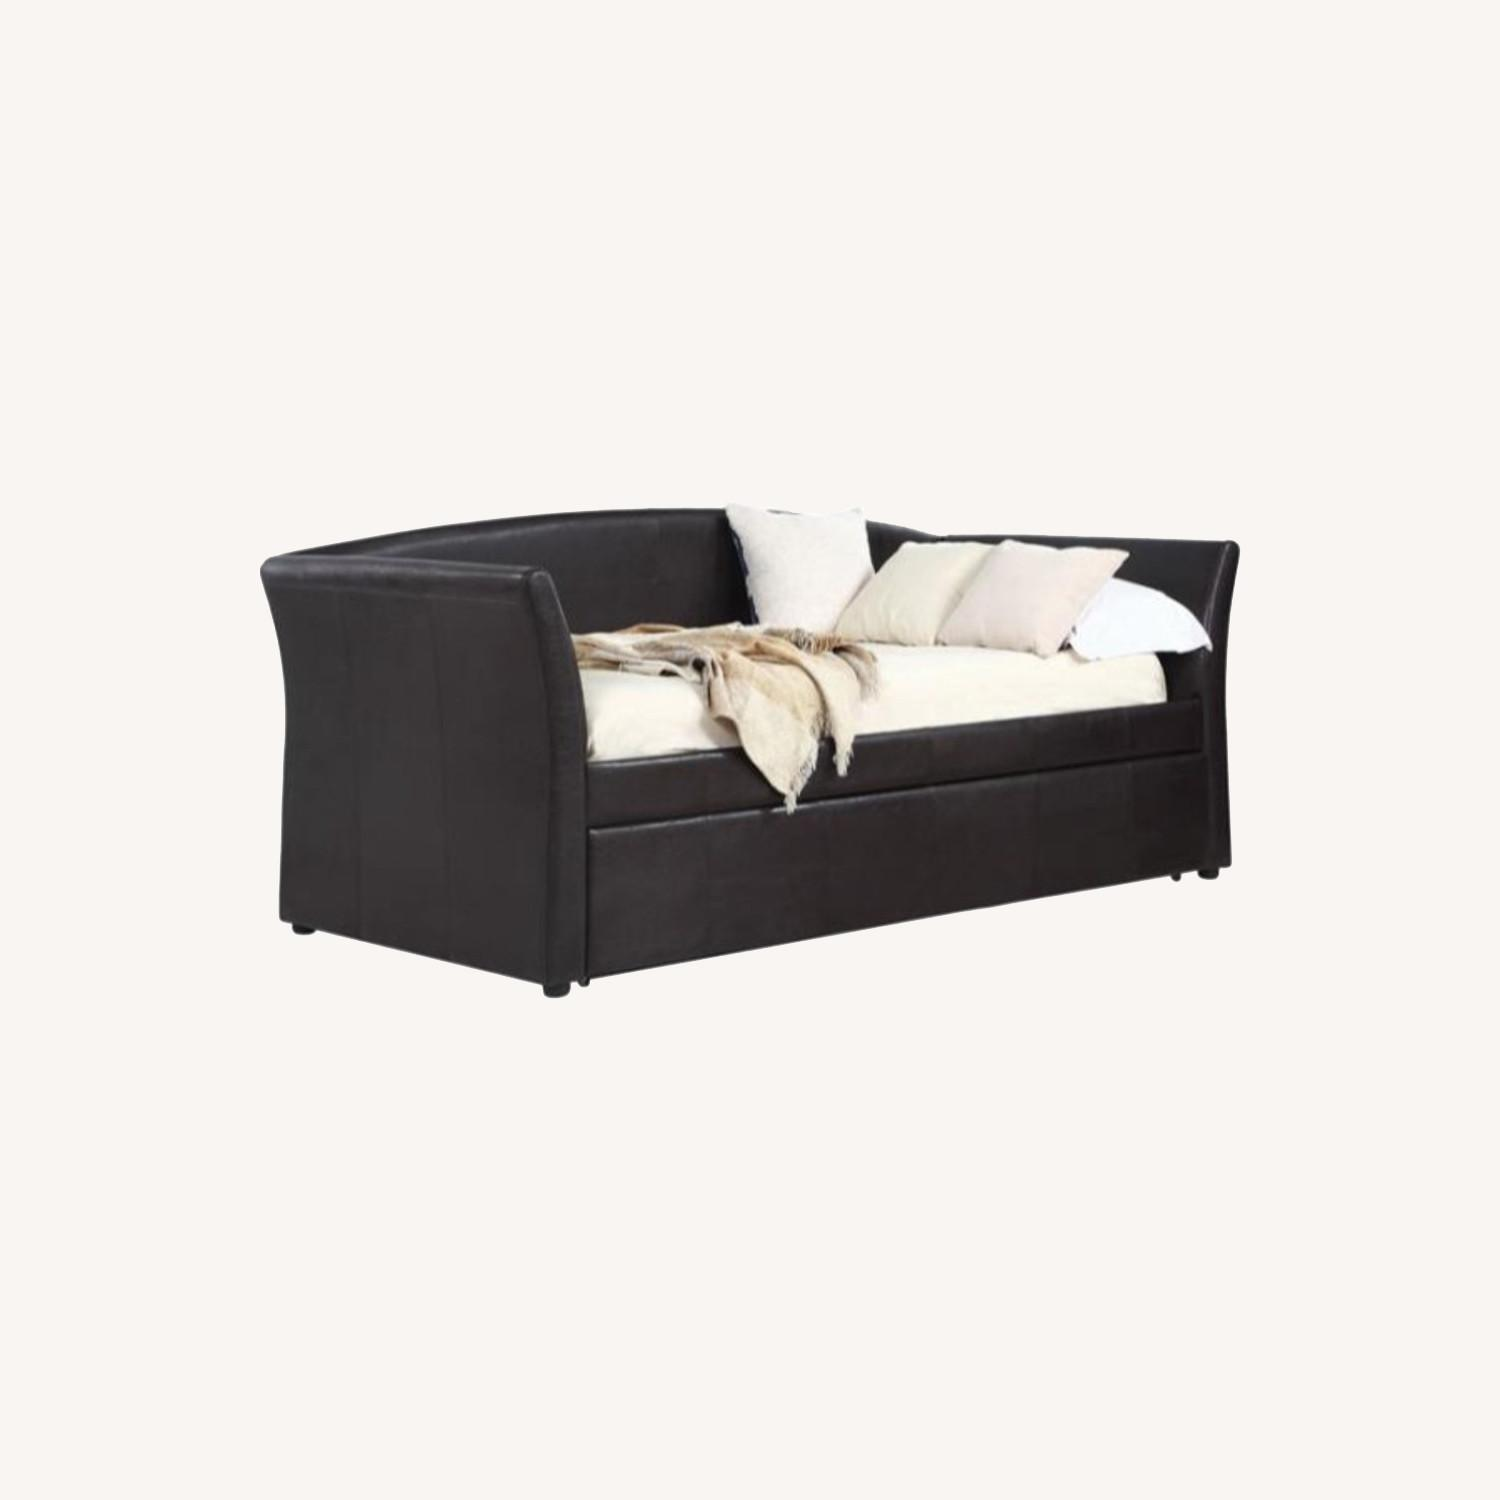 Twin Daybed In Dark Brown Leatherette Upholstery - image-4